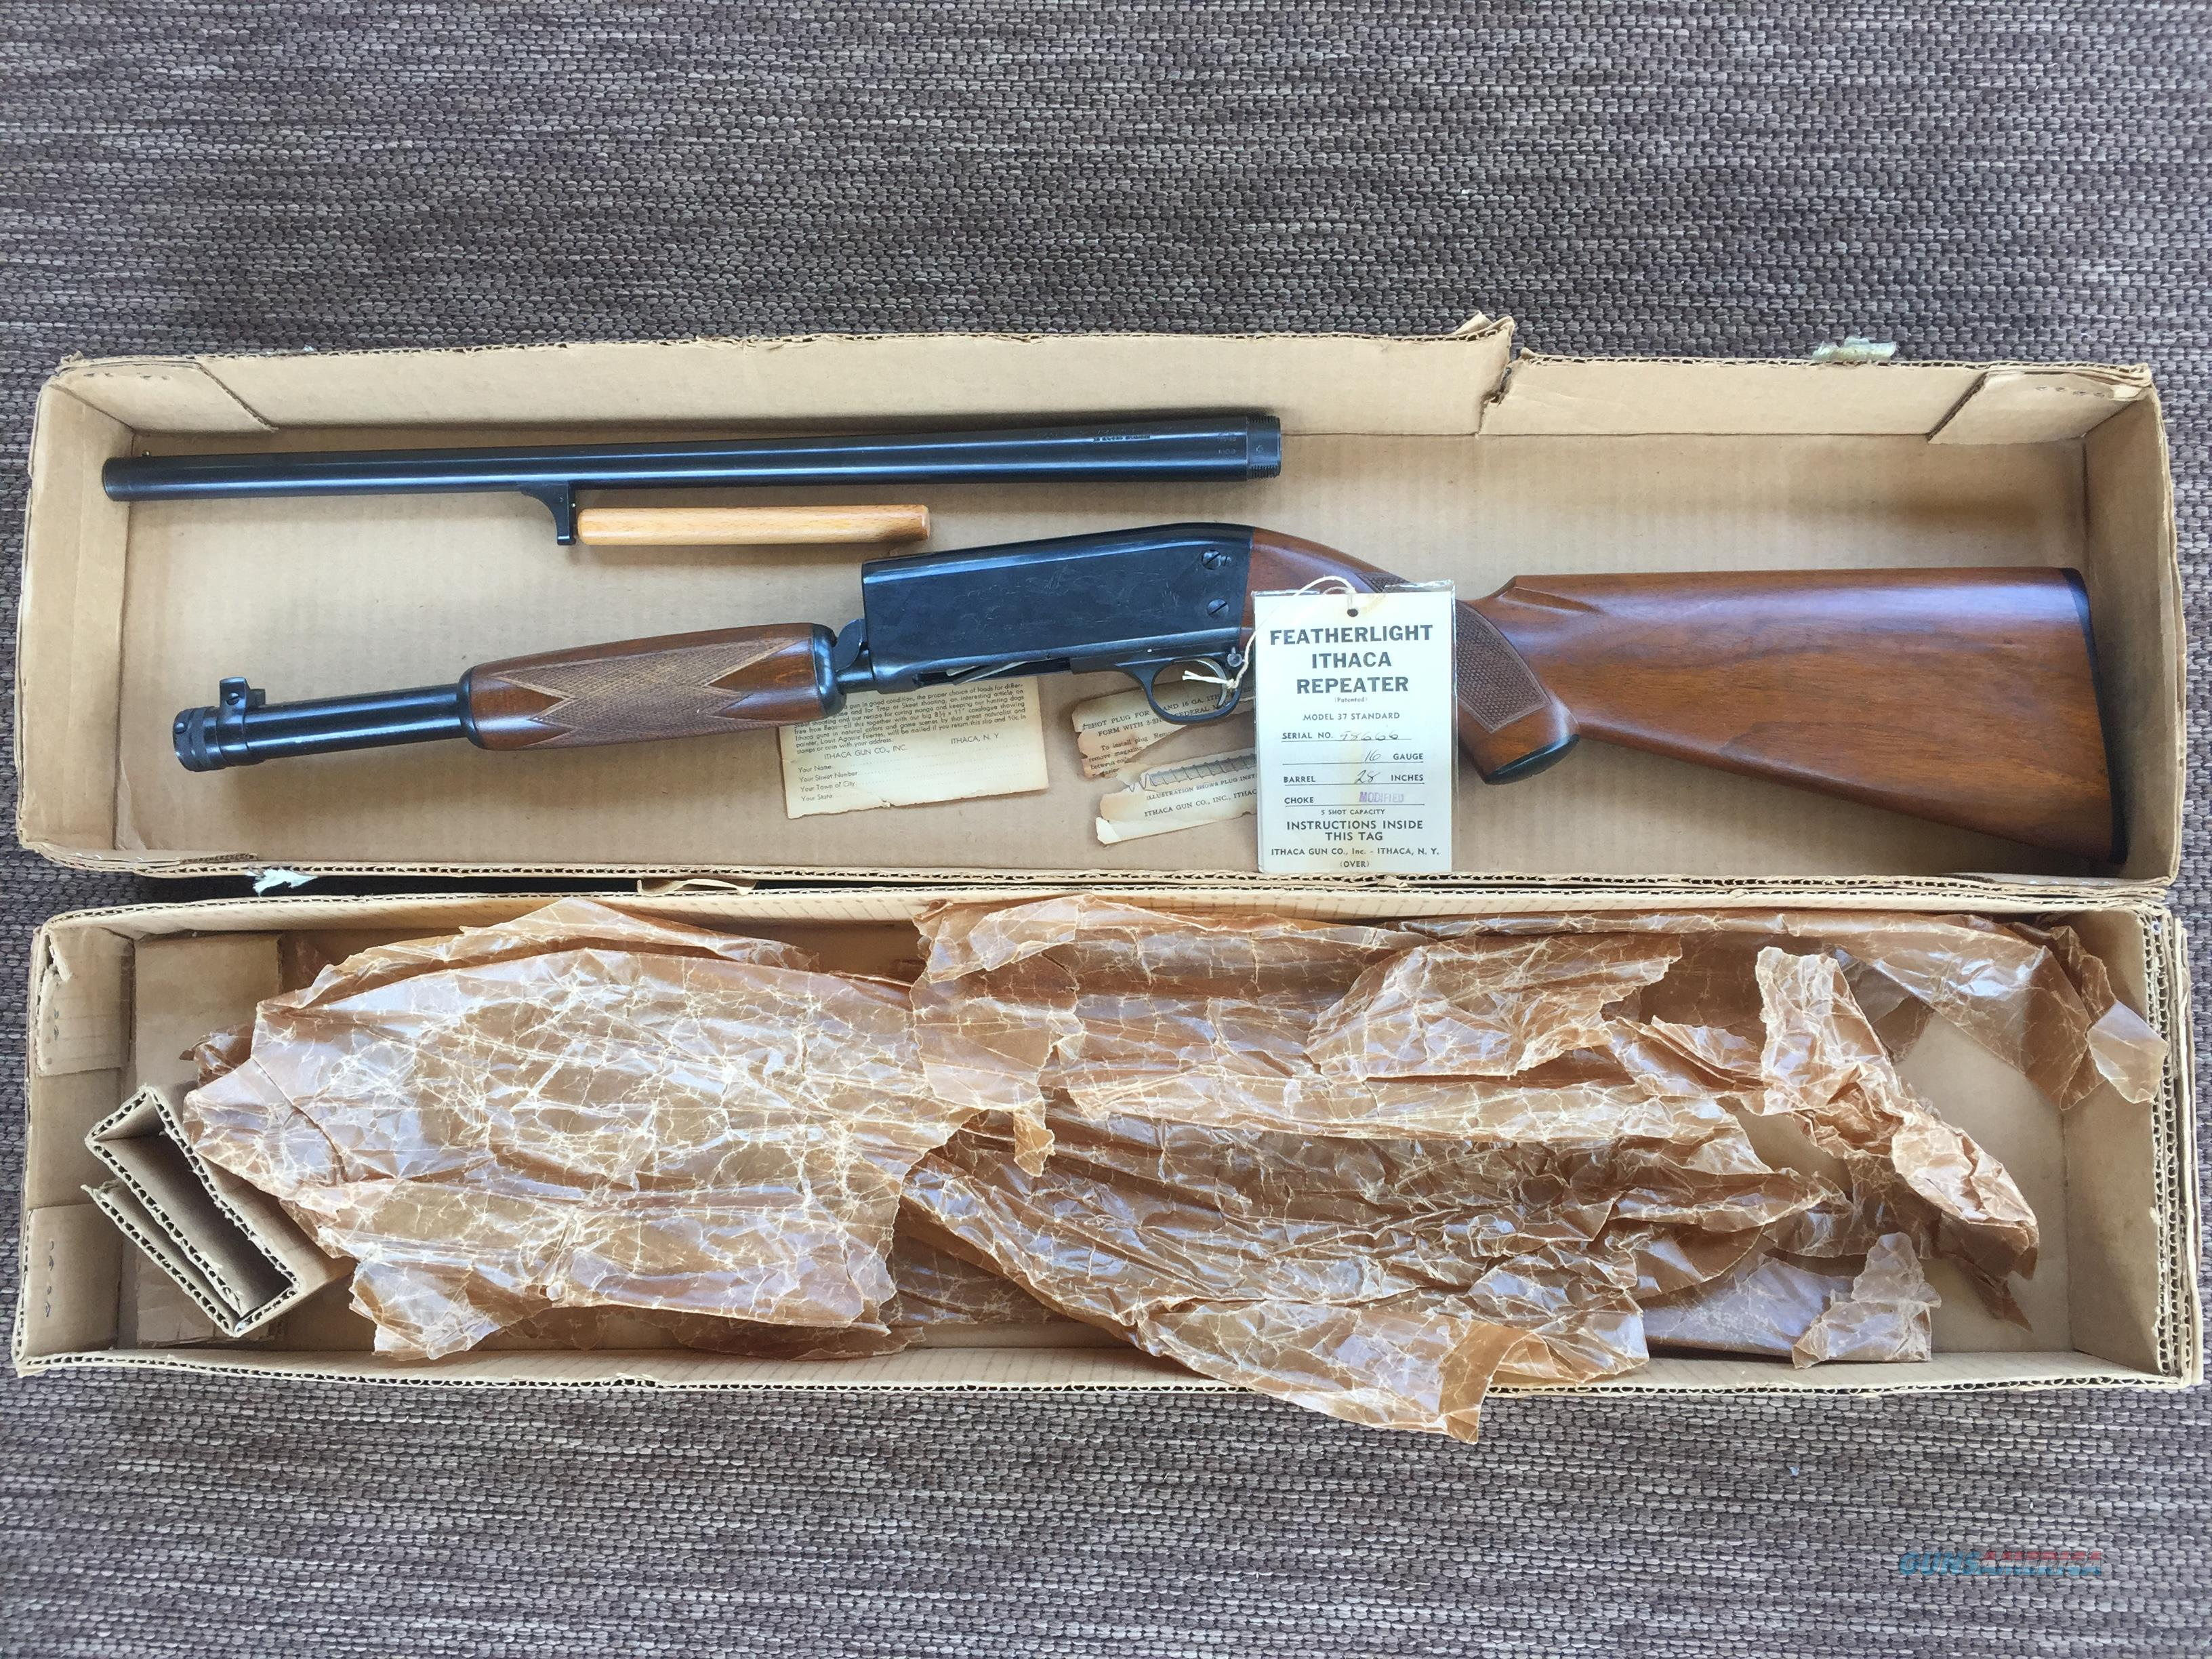 Model 37 -1942 - with Box